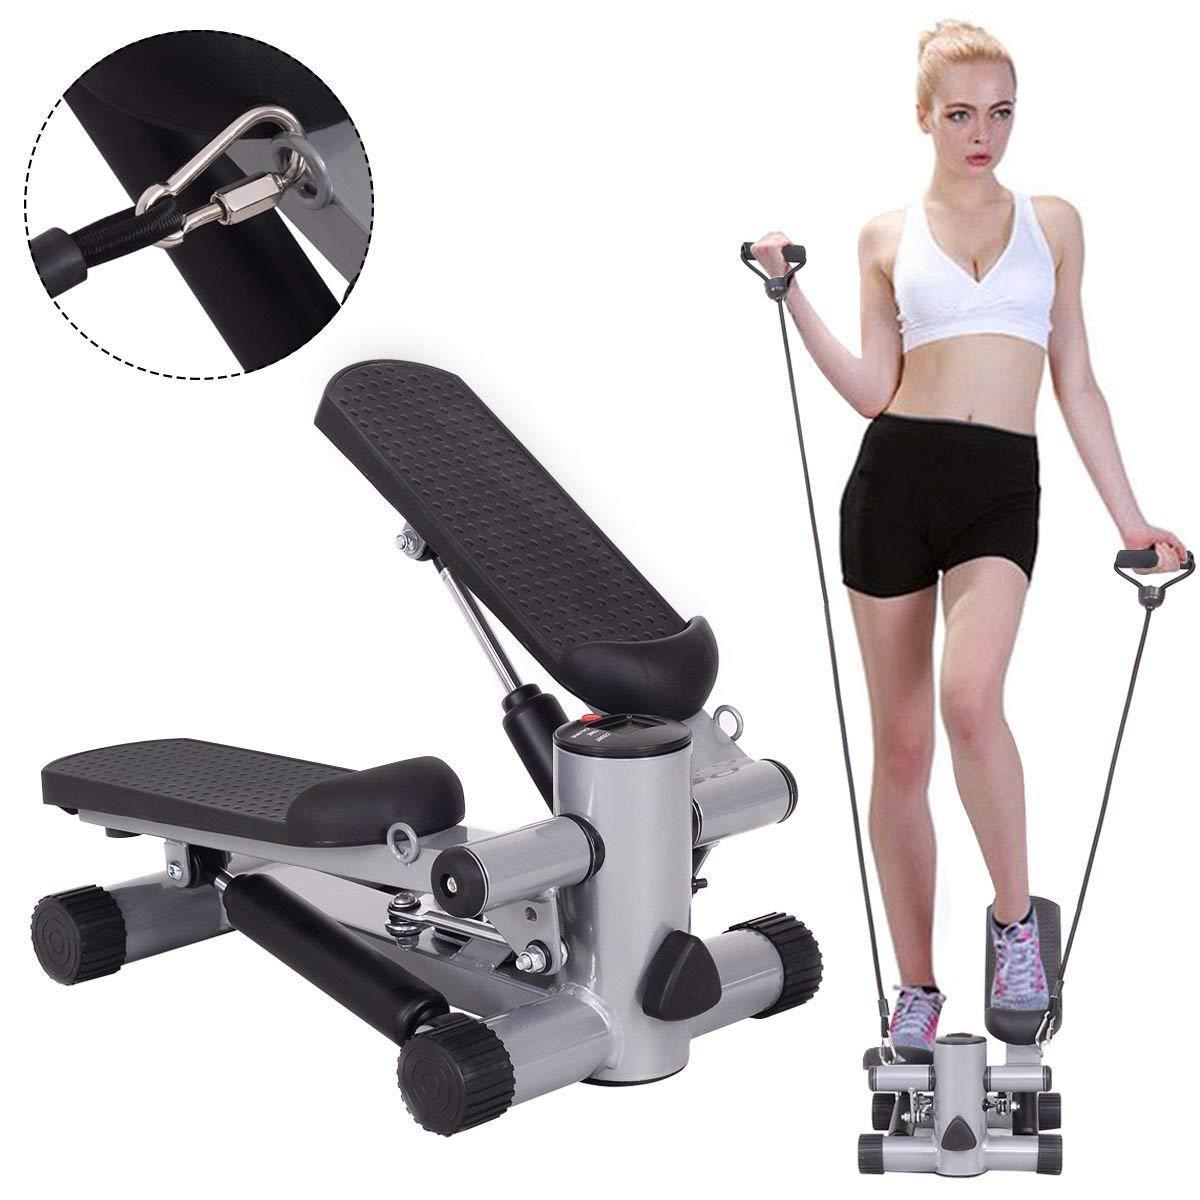 Goplus Mini Stepper Air Climber Step Fitness Exercise Machine with Resistance Band and LCD Display by Goplus (Image #3)